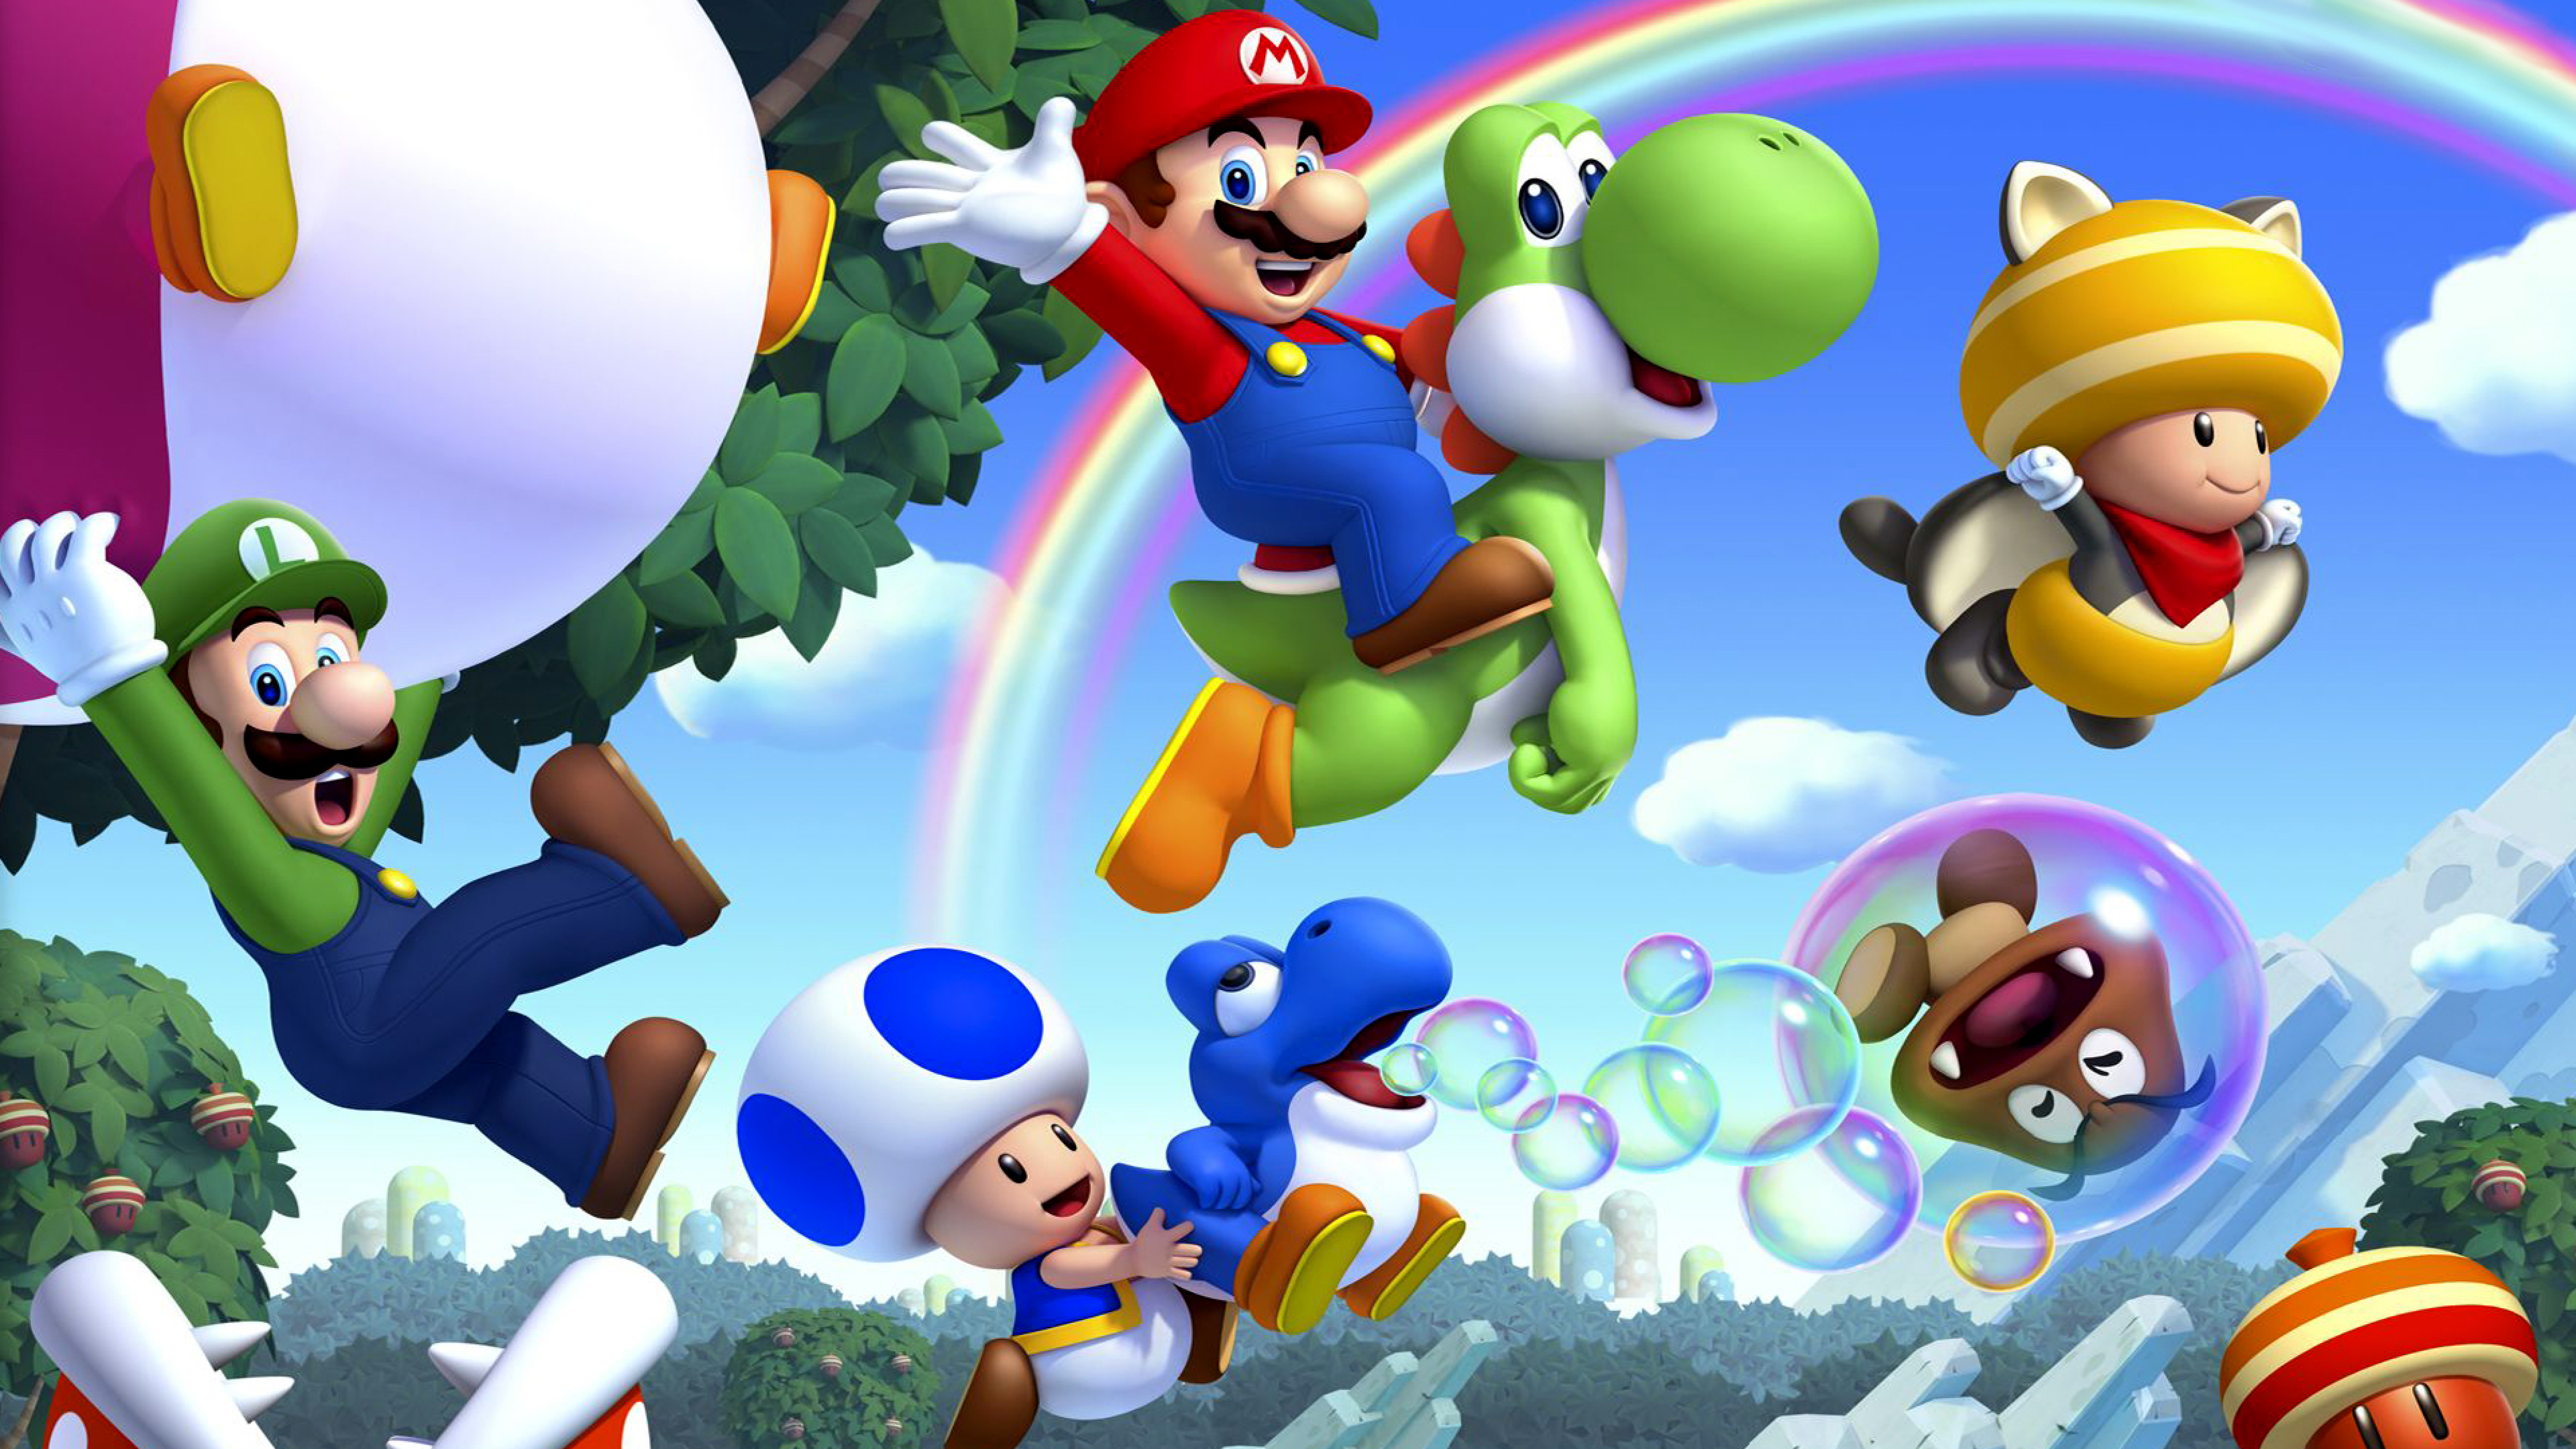 7680x4320 Super Mario Nintendo Wii U 8k Wallpaper Hd Games 4k Wallpapers Images Photos And Background